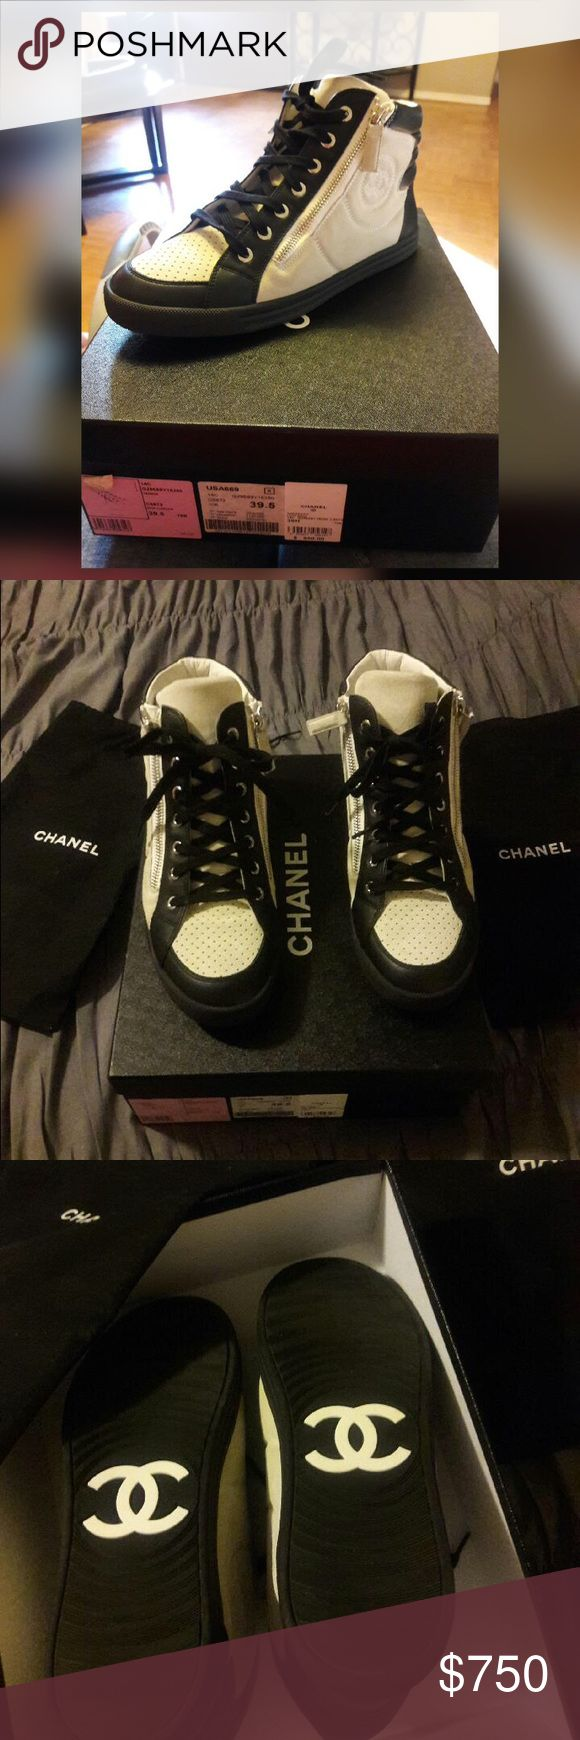 Chanel Tennis Authentic NWT Black & White Chanel High Top Tennis Shoes CHANEL Shoes Athletic Shoes